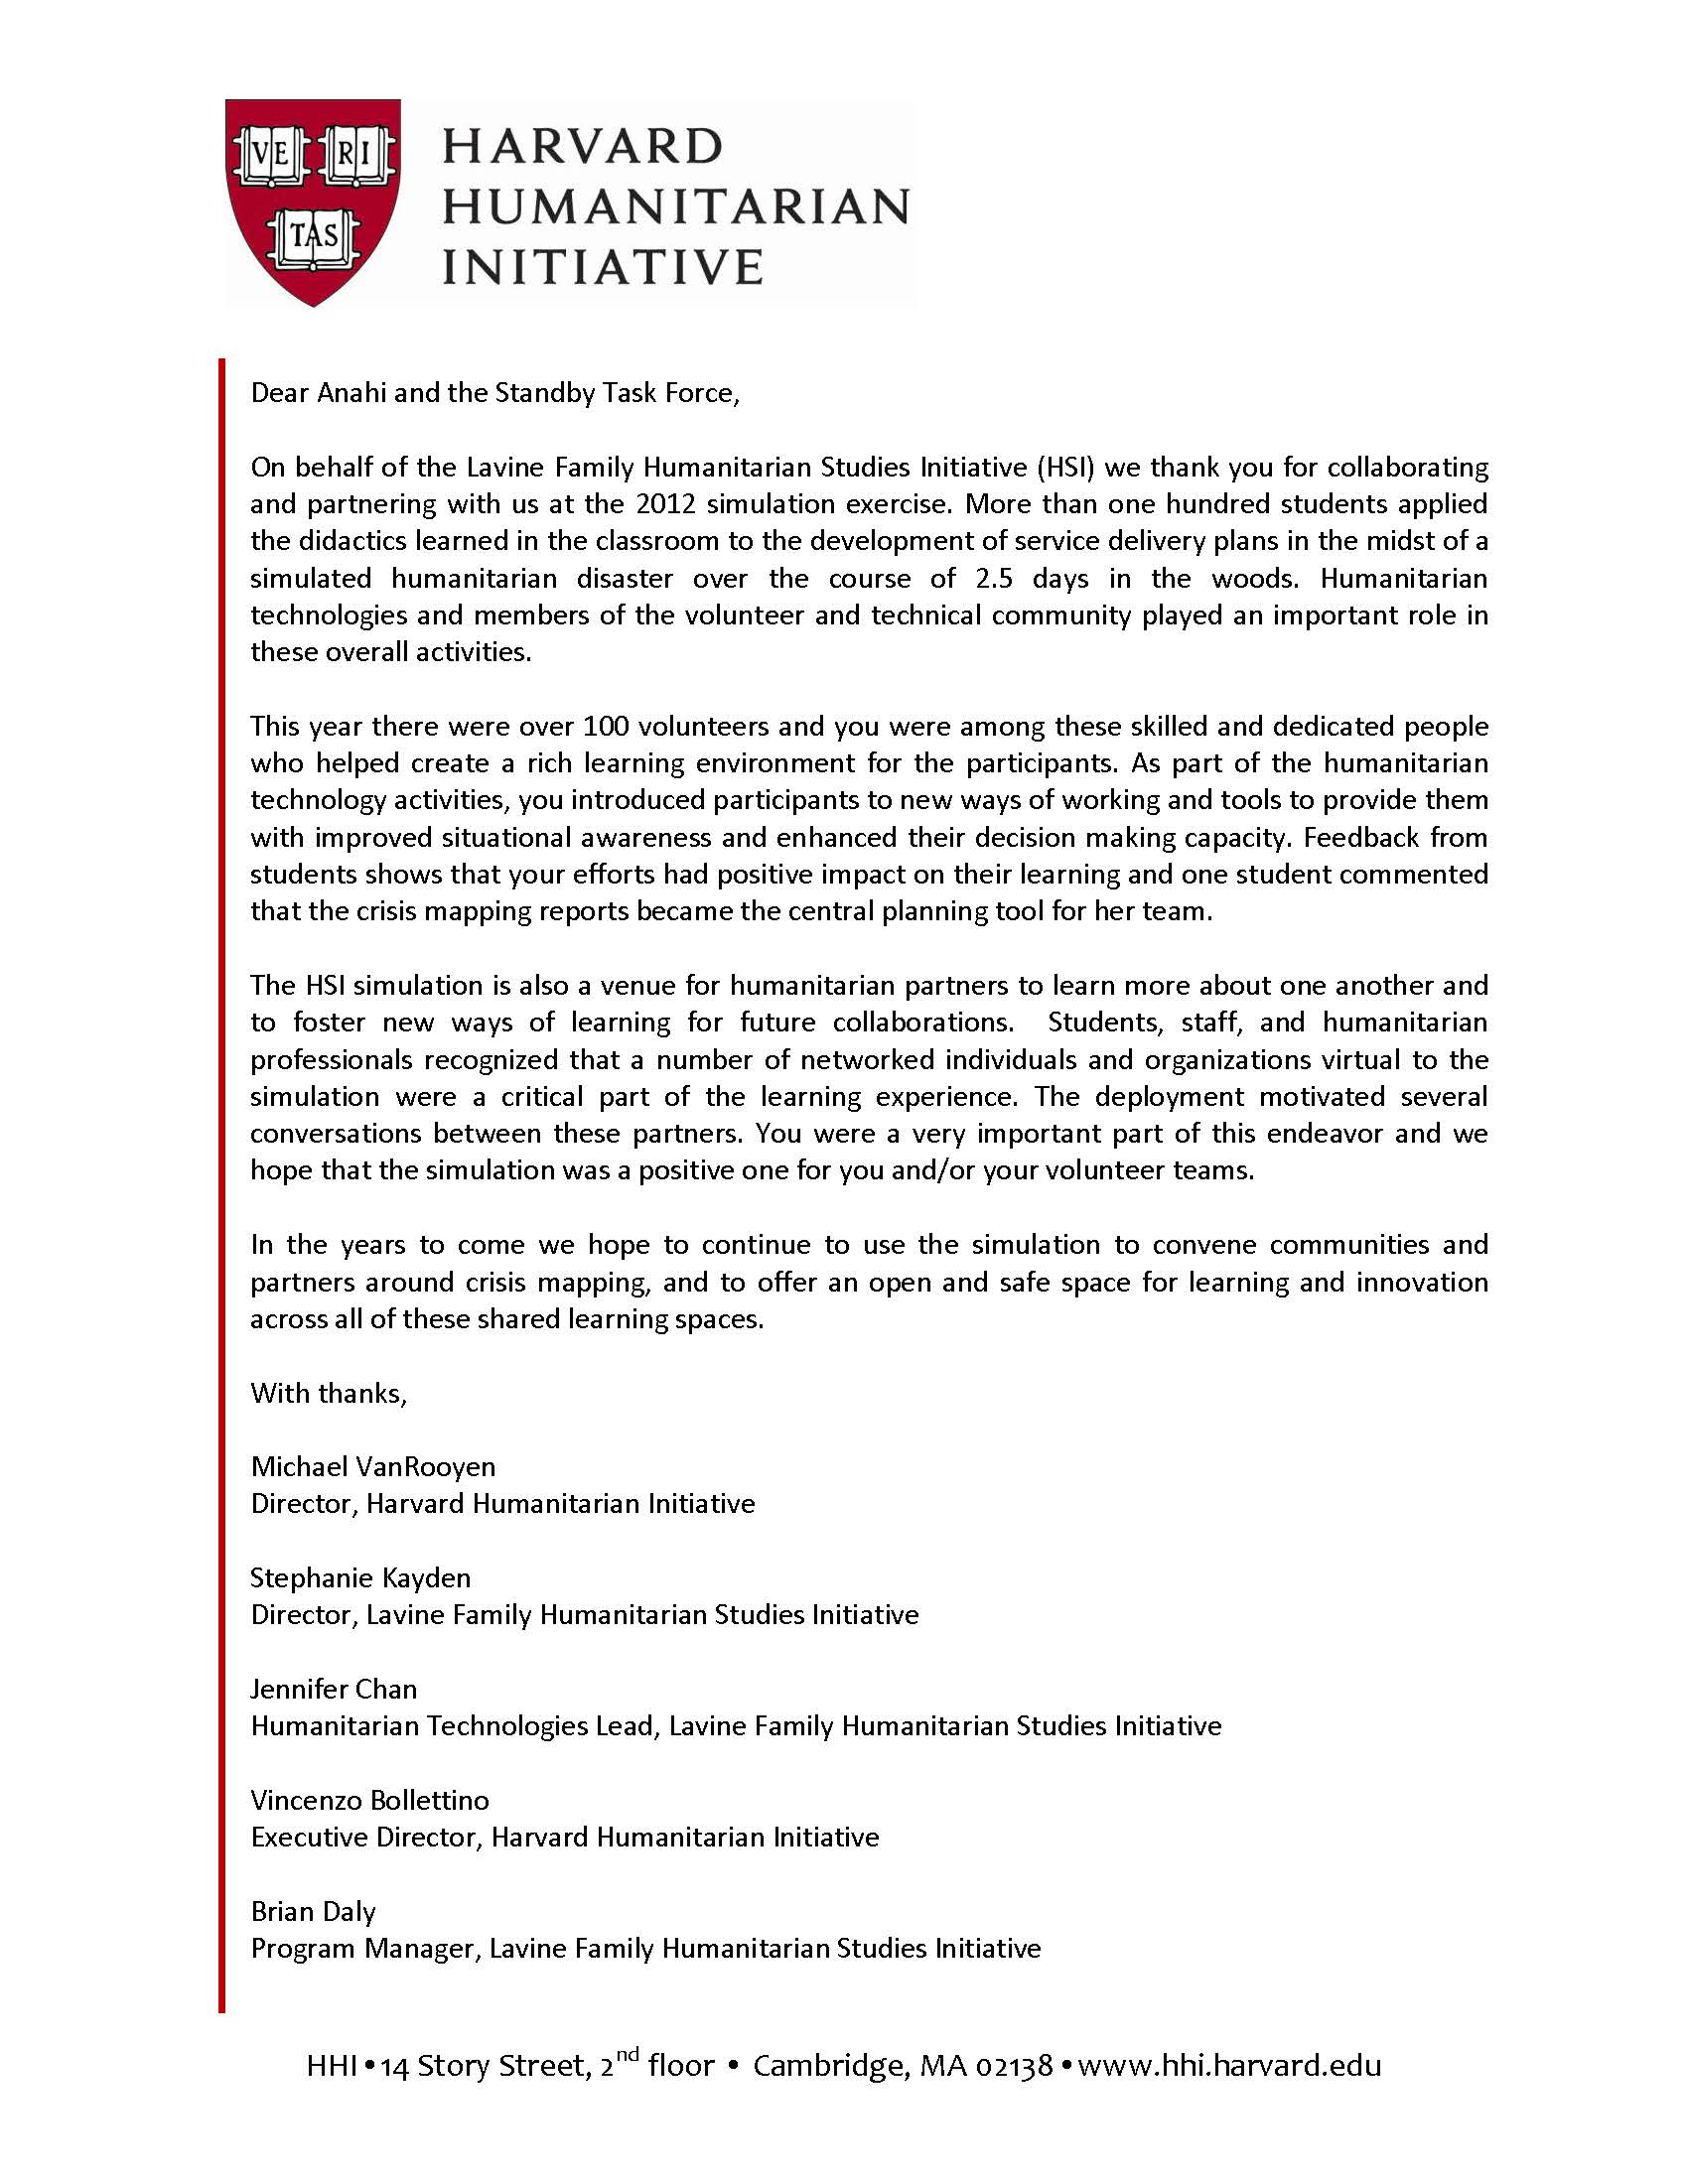 harvard cover letter sample